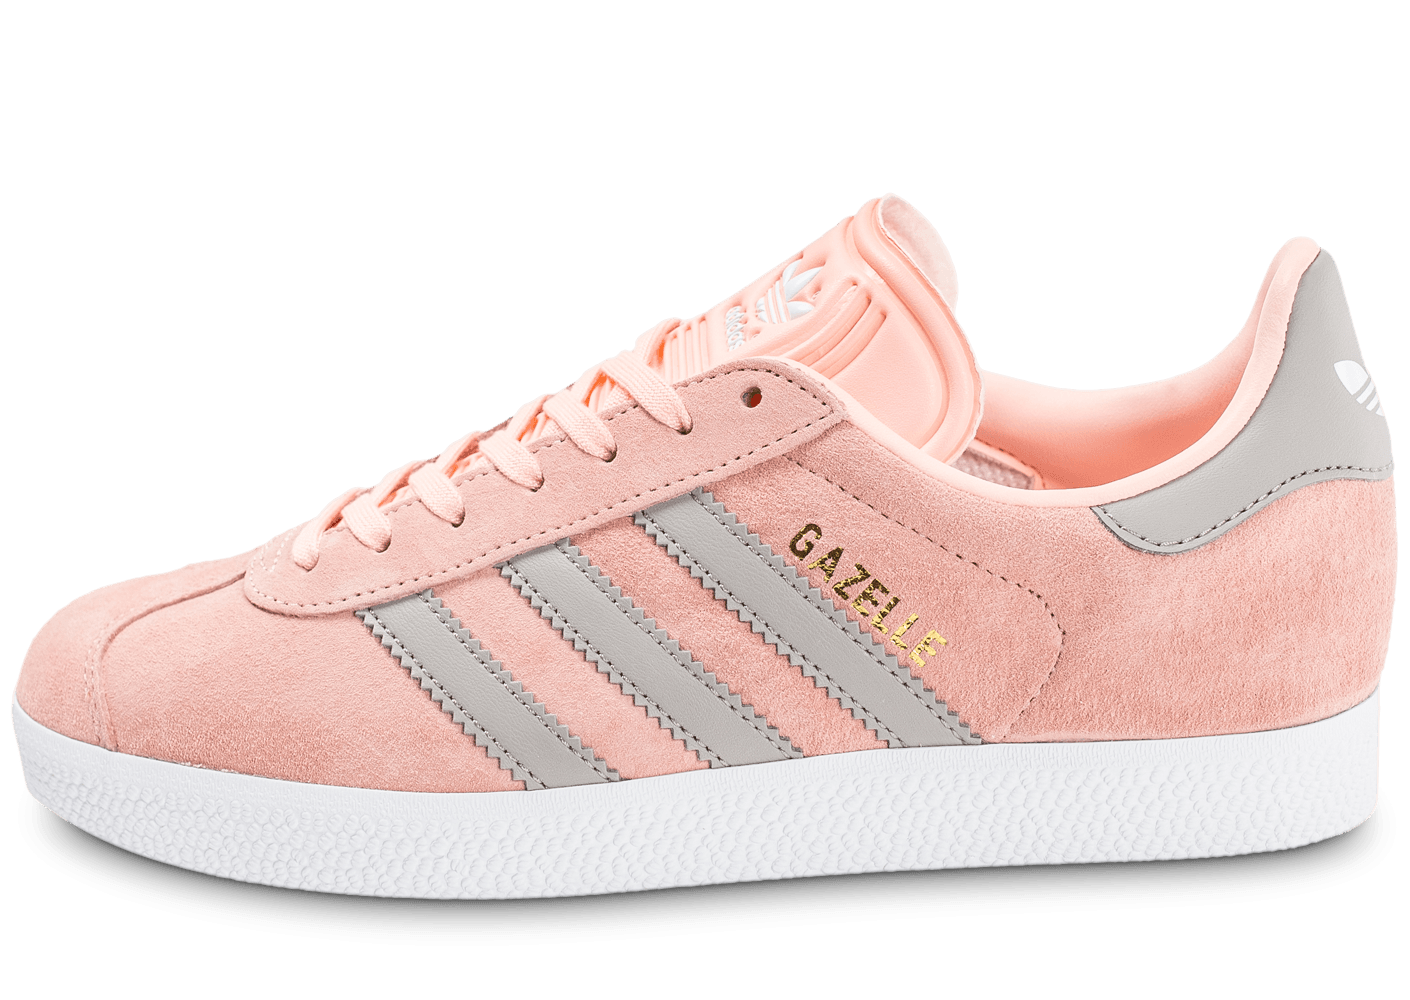 adidas gazelle w corail chaussures adidas chausport. Black Bedroom Furniture Sets. Home Design Ideas